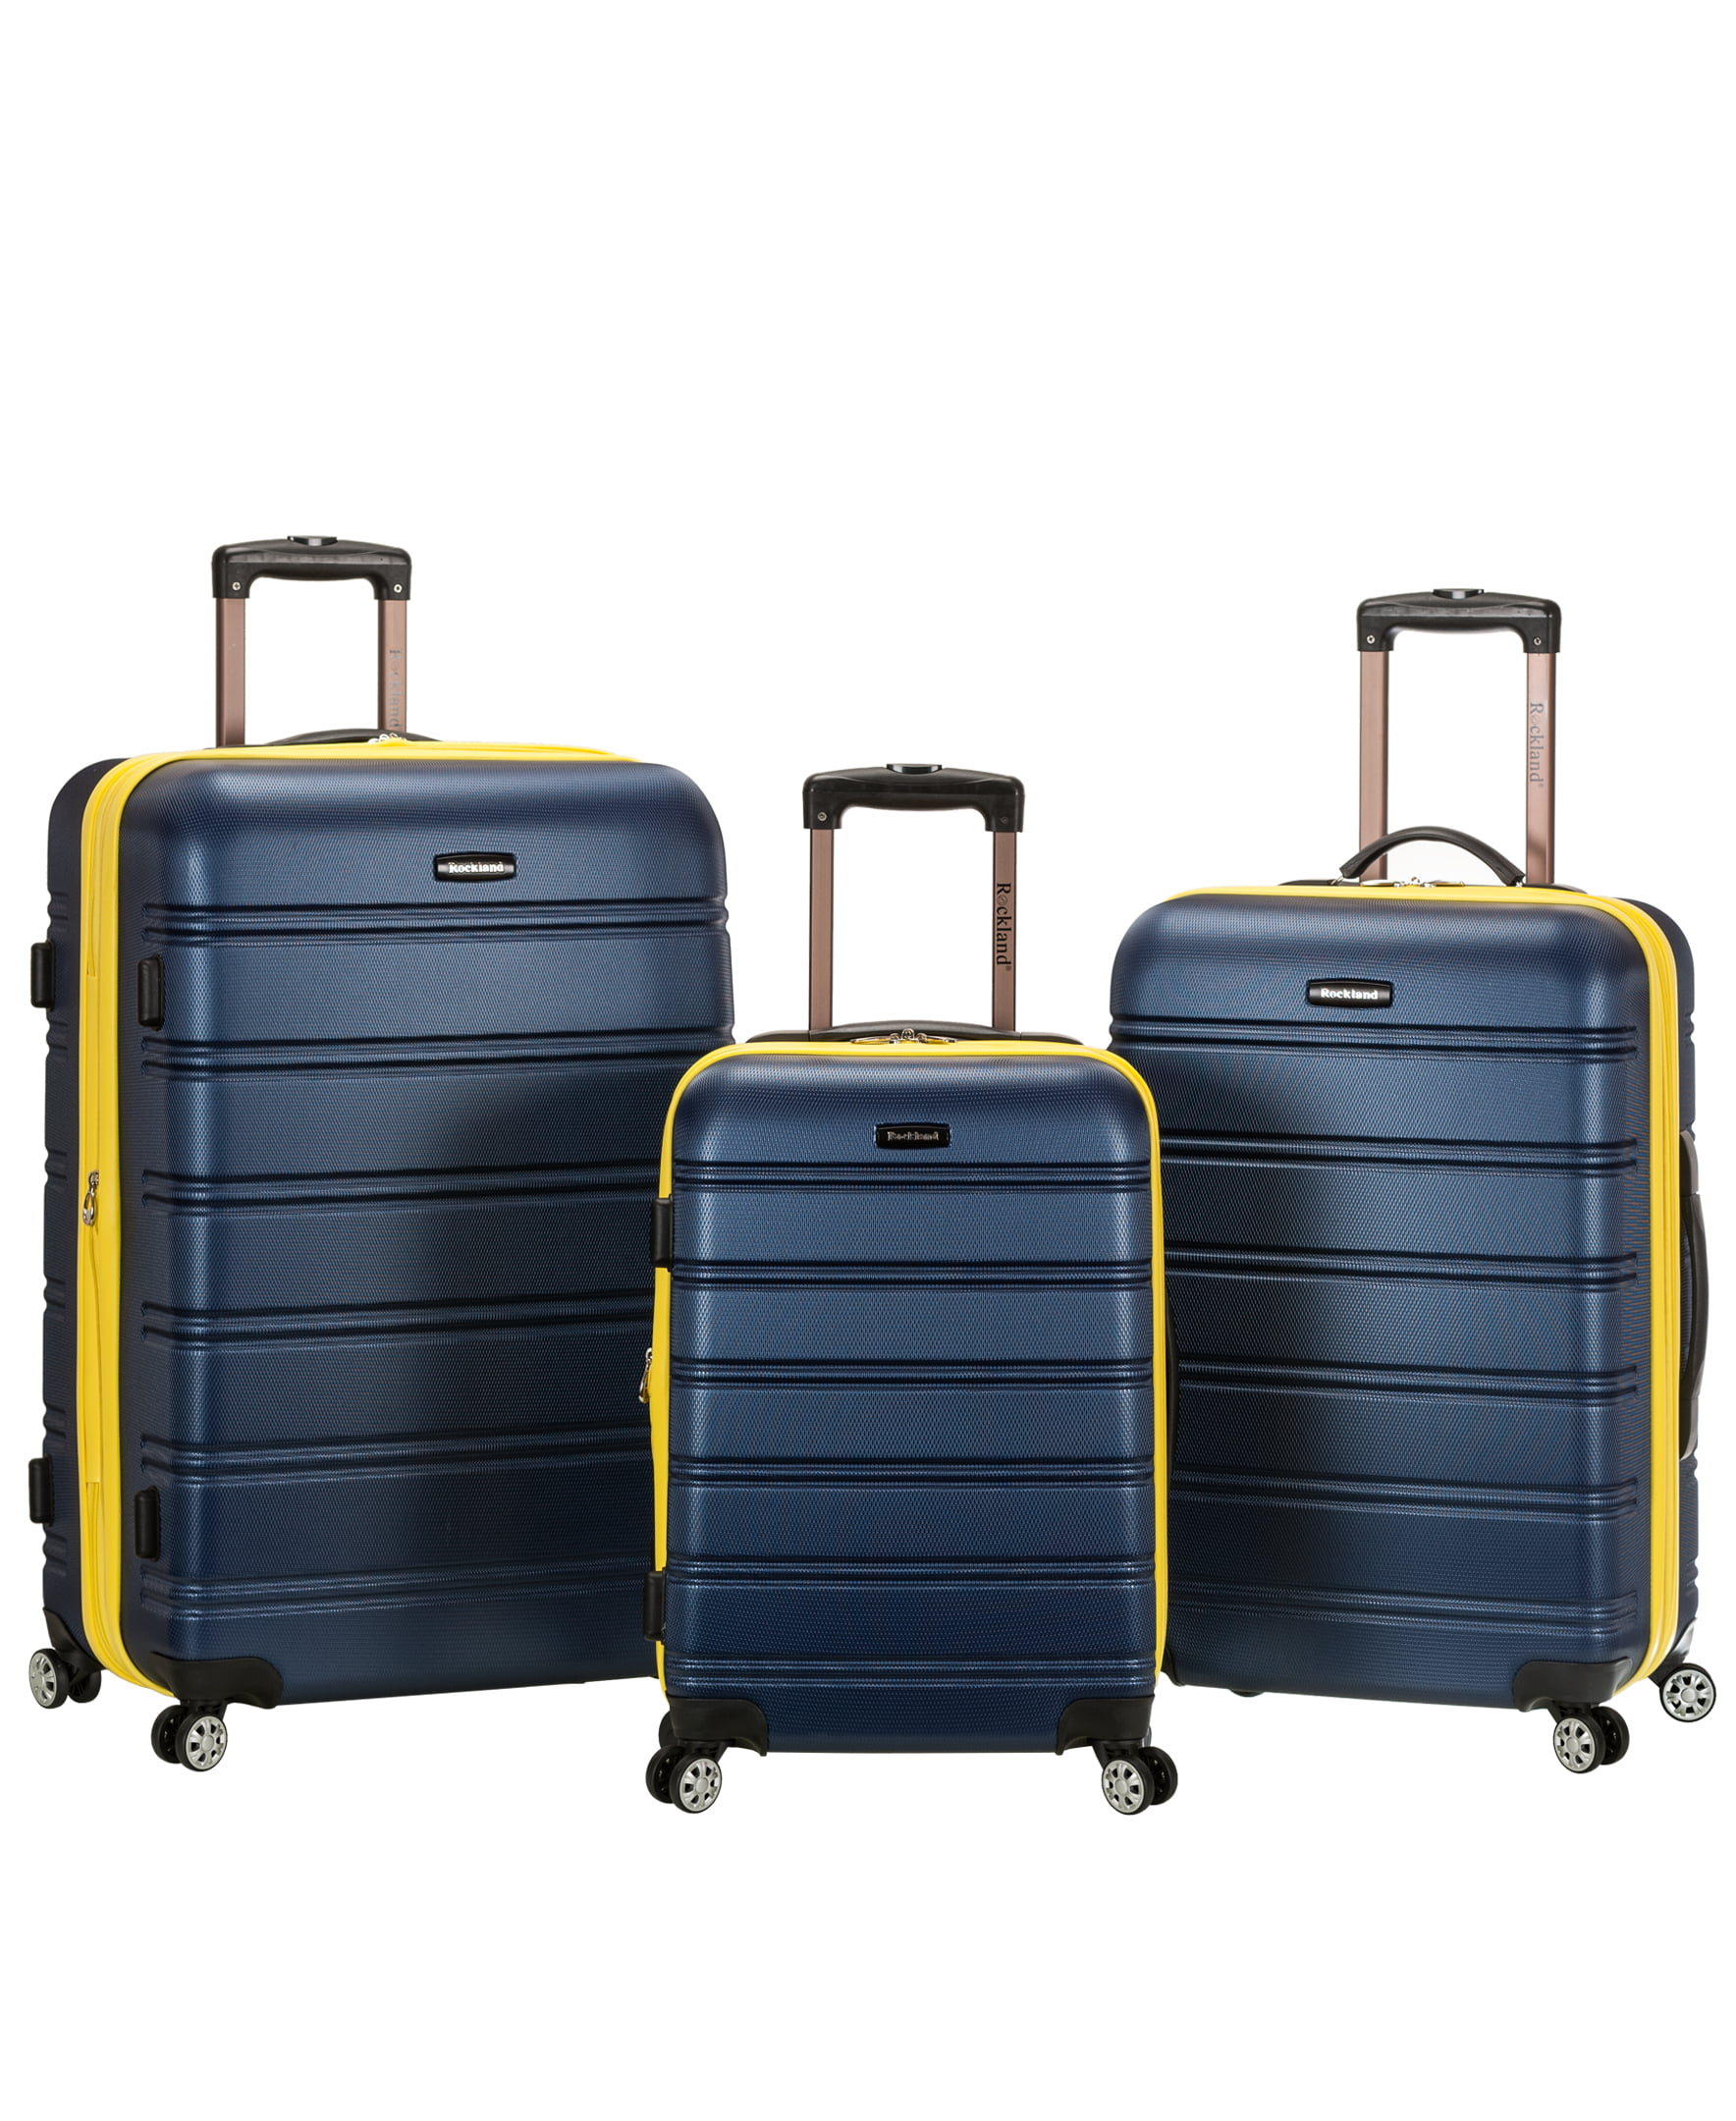 2e436de9a Rockland Luggage Melbourne 3 Piece Hardside Luggage Set - Walmart.com